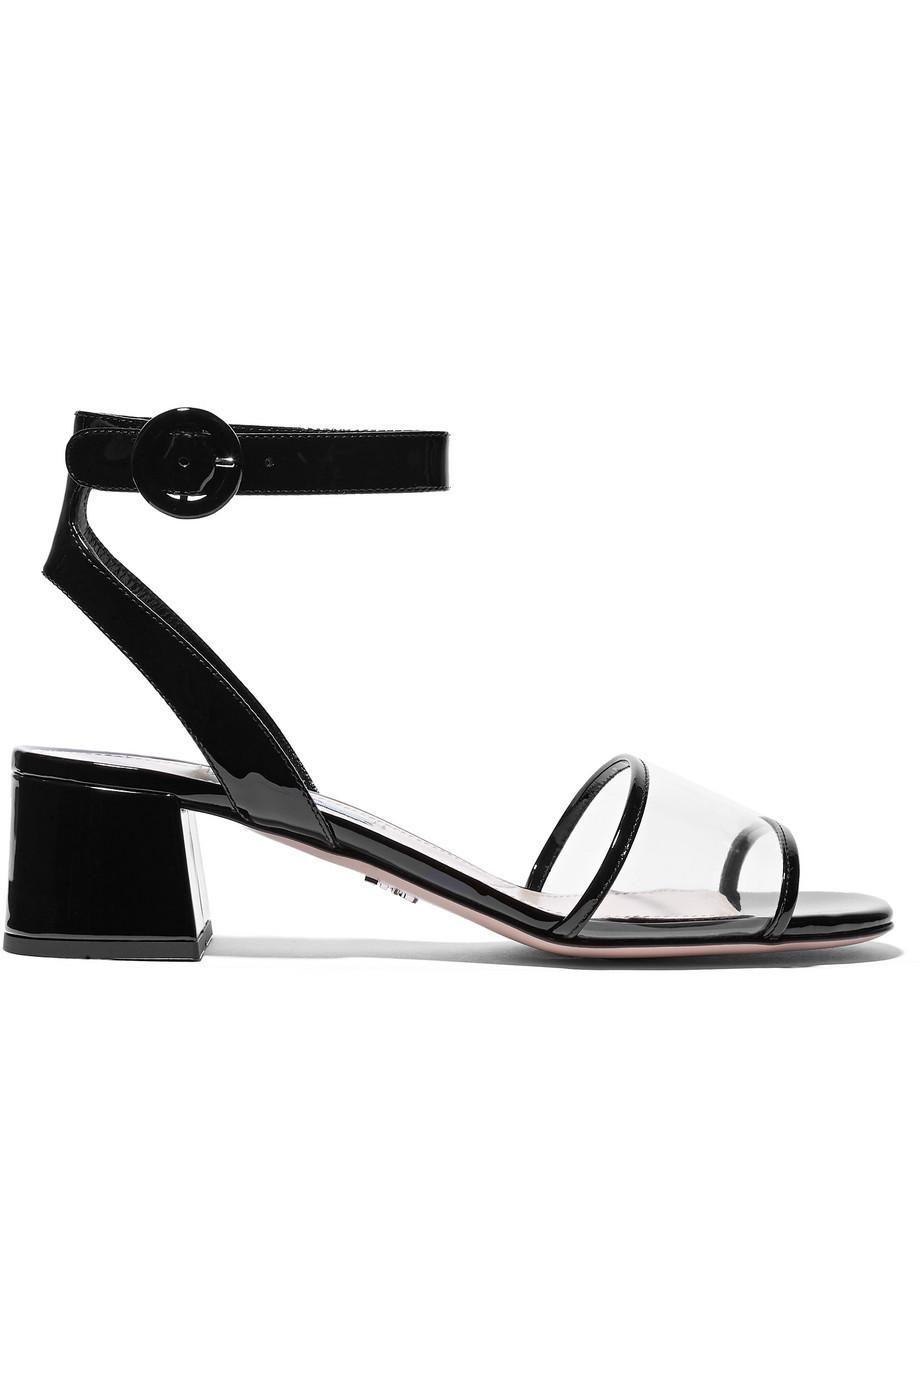 Meet your next night-out shoes.